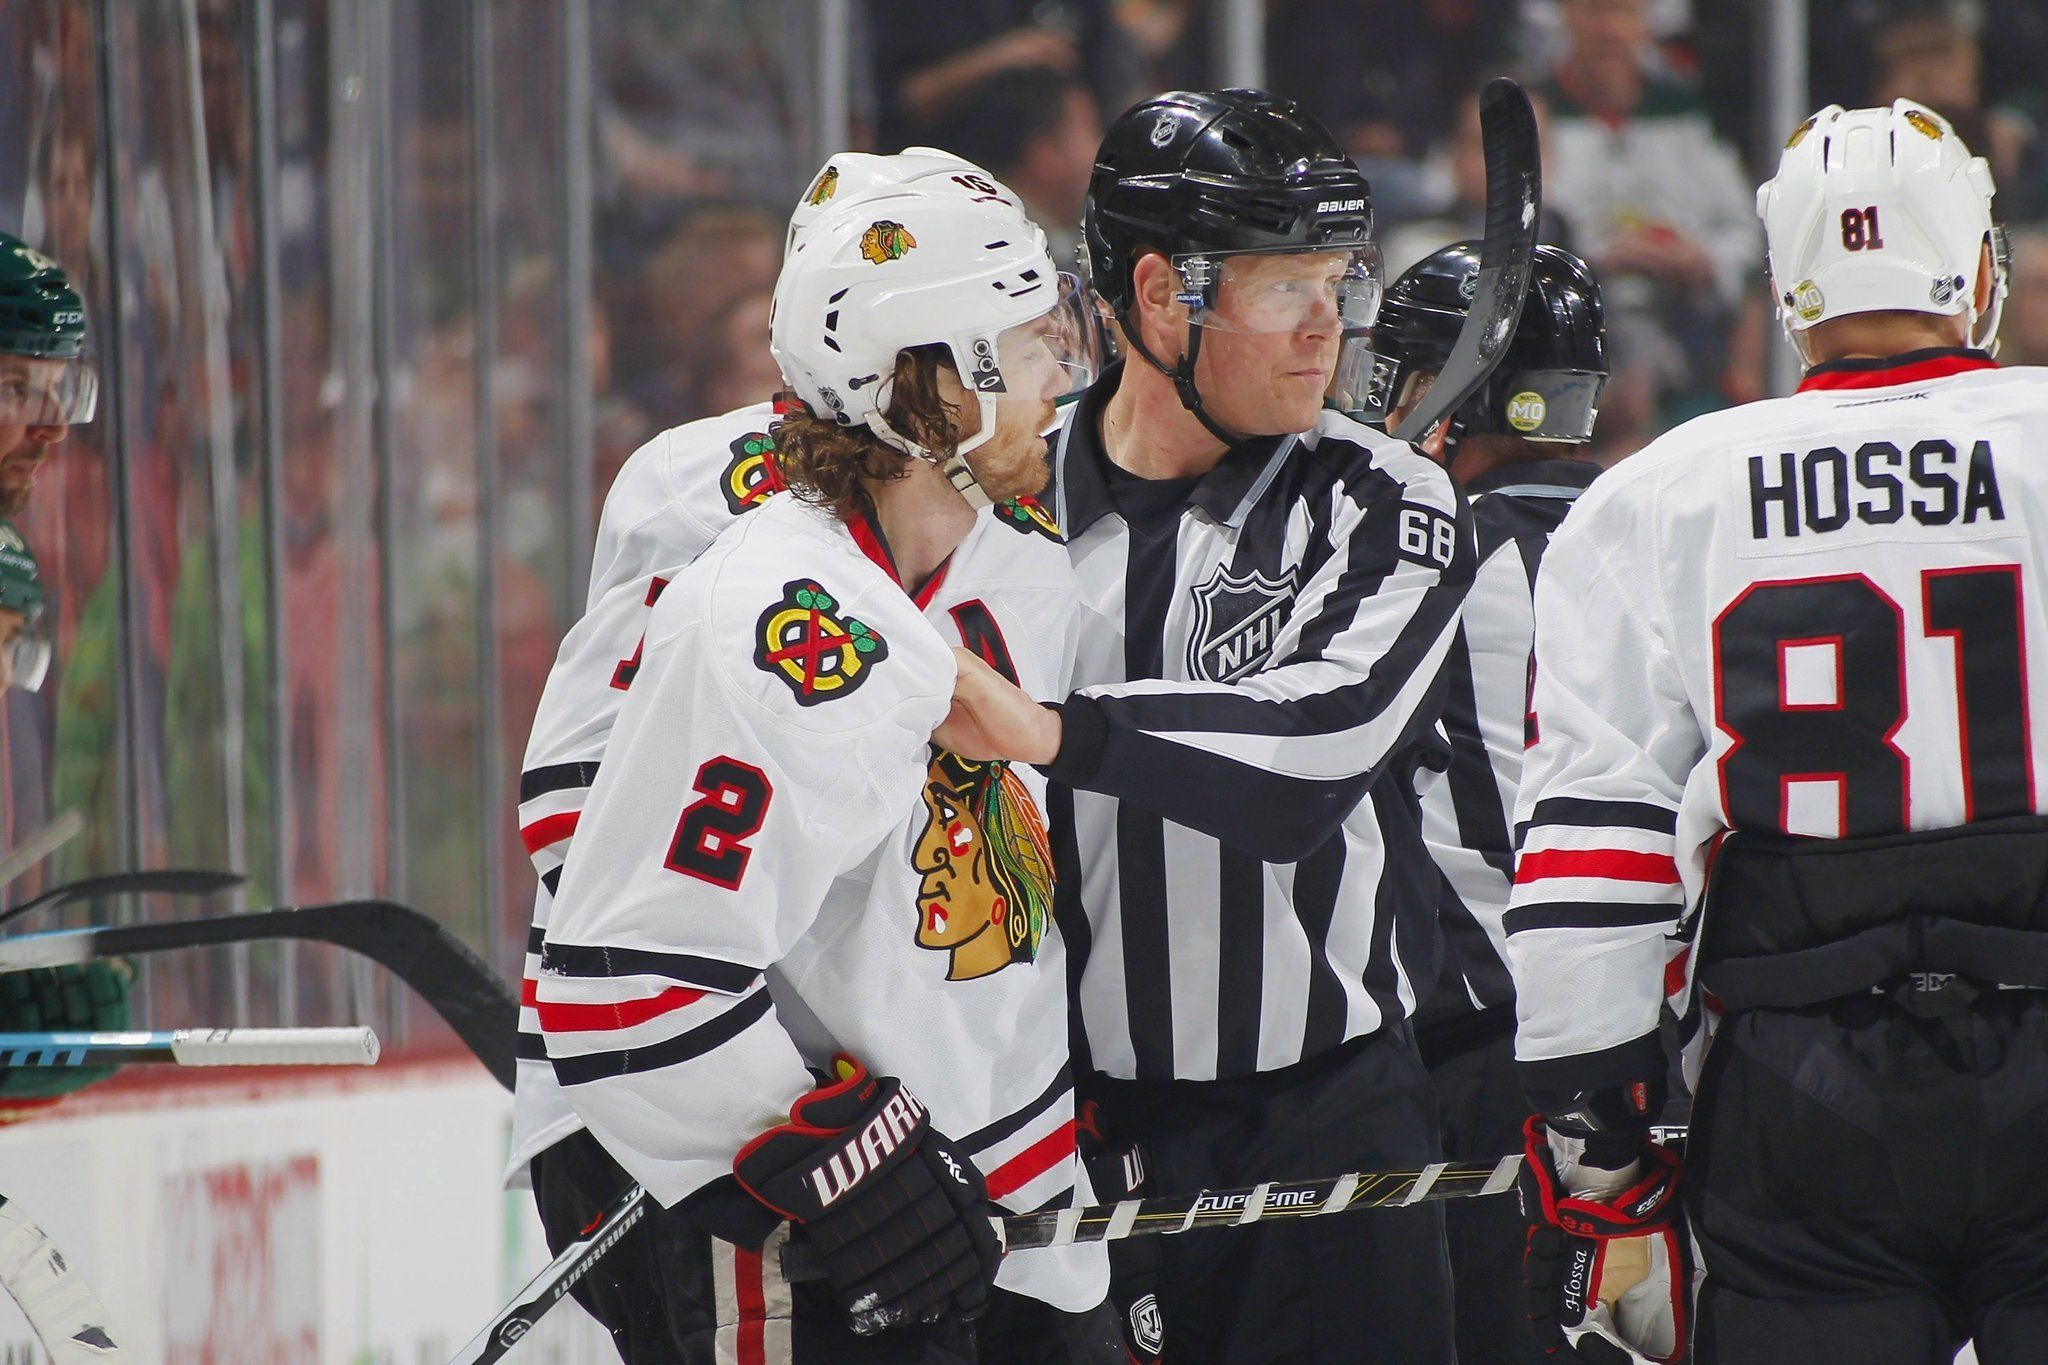 Blackhawks' Duncan Keith gets six-game suspension, will miss first game of playoffs - Chicago Tribune